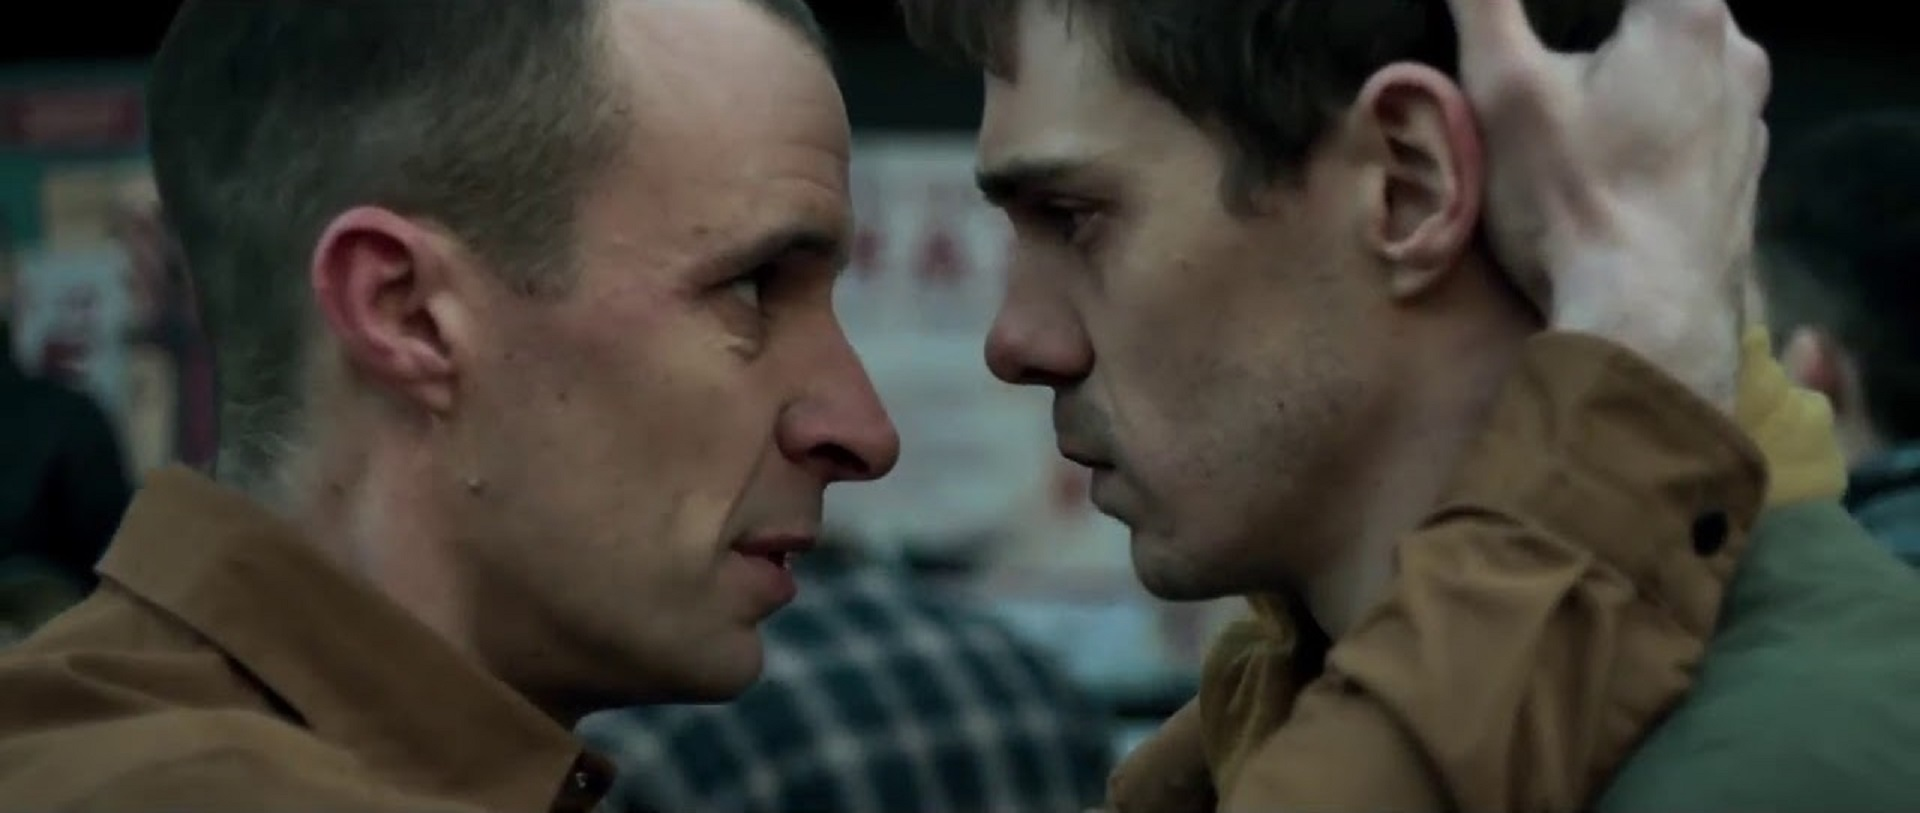 Tom Vaughan-Lawlor, Sam Keeley in The Cured (2017)